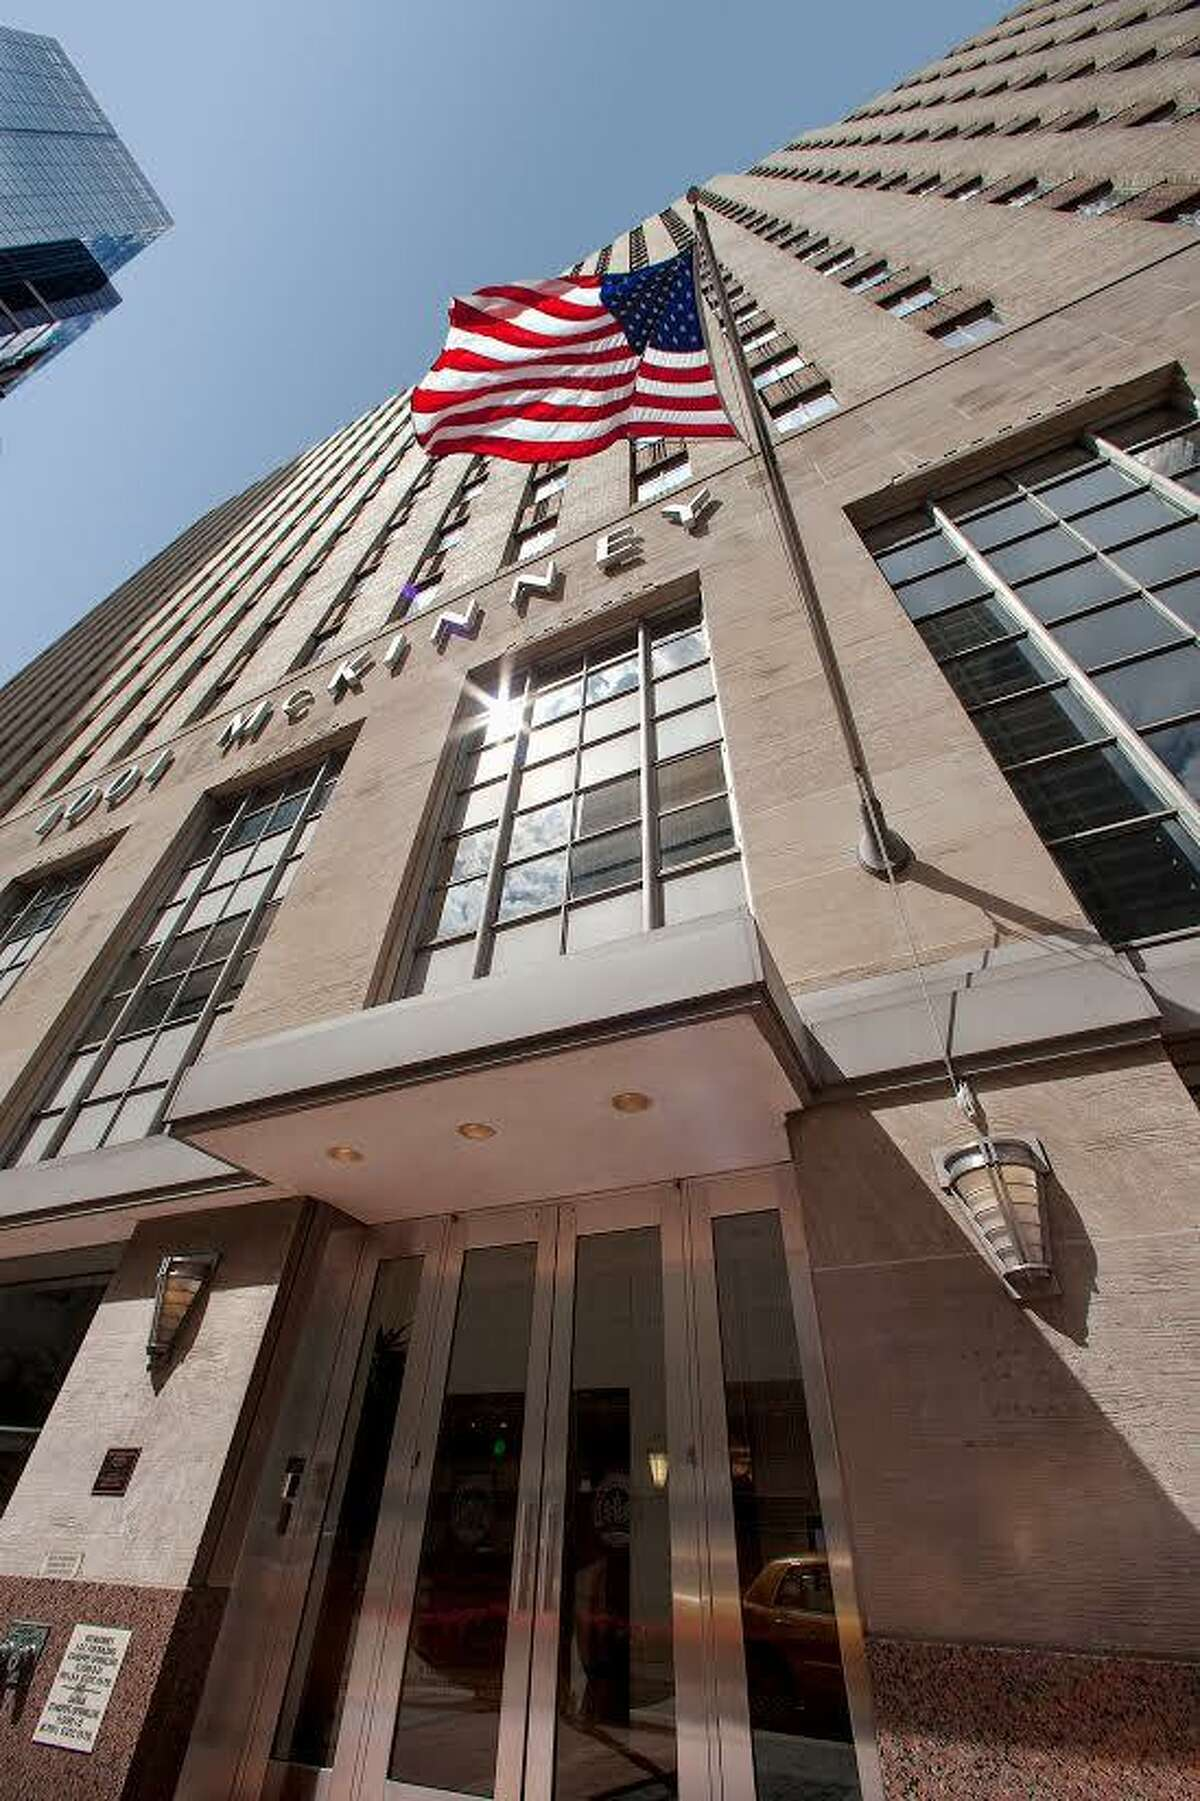 Schouest, Bamdas, Soshea & BenMaier, a law firm known as SBSB, has leased the 14th floor of the recently renovated 1001 McKinney building, according to Cameron Management.